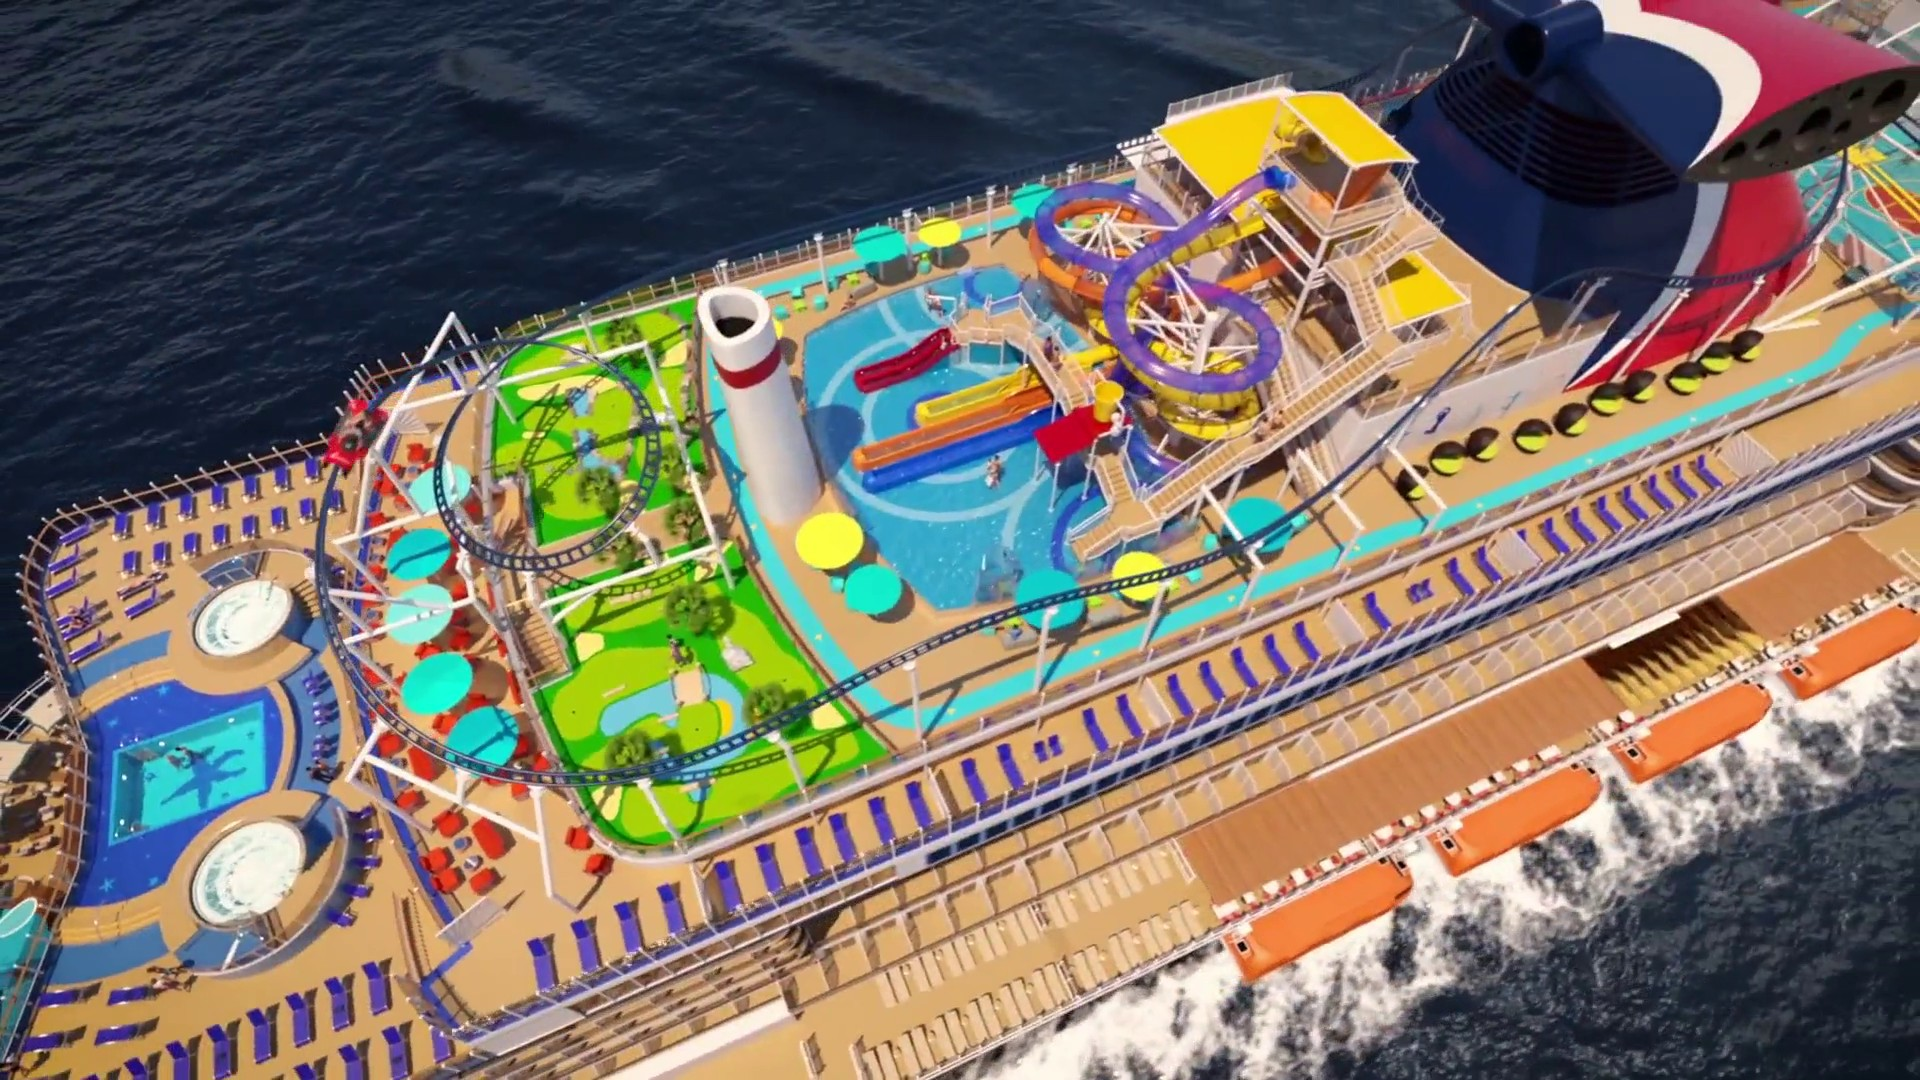 This Is What The First Roller Coaster At Sea Will Look Like